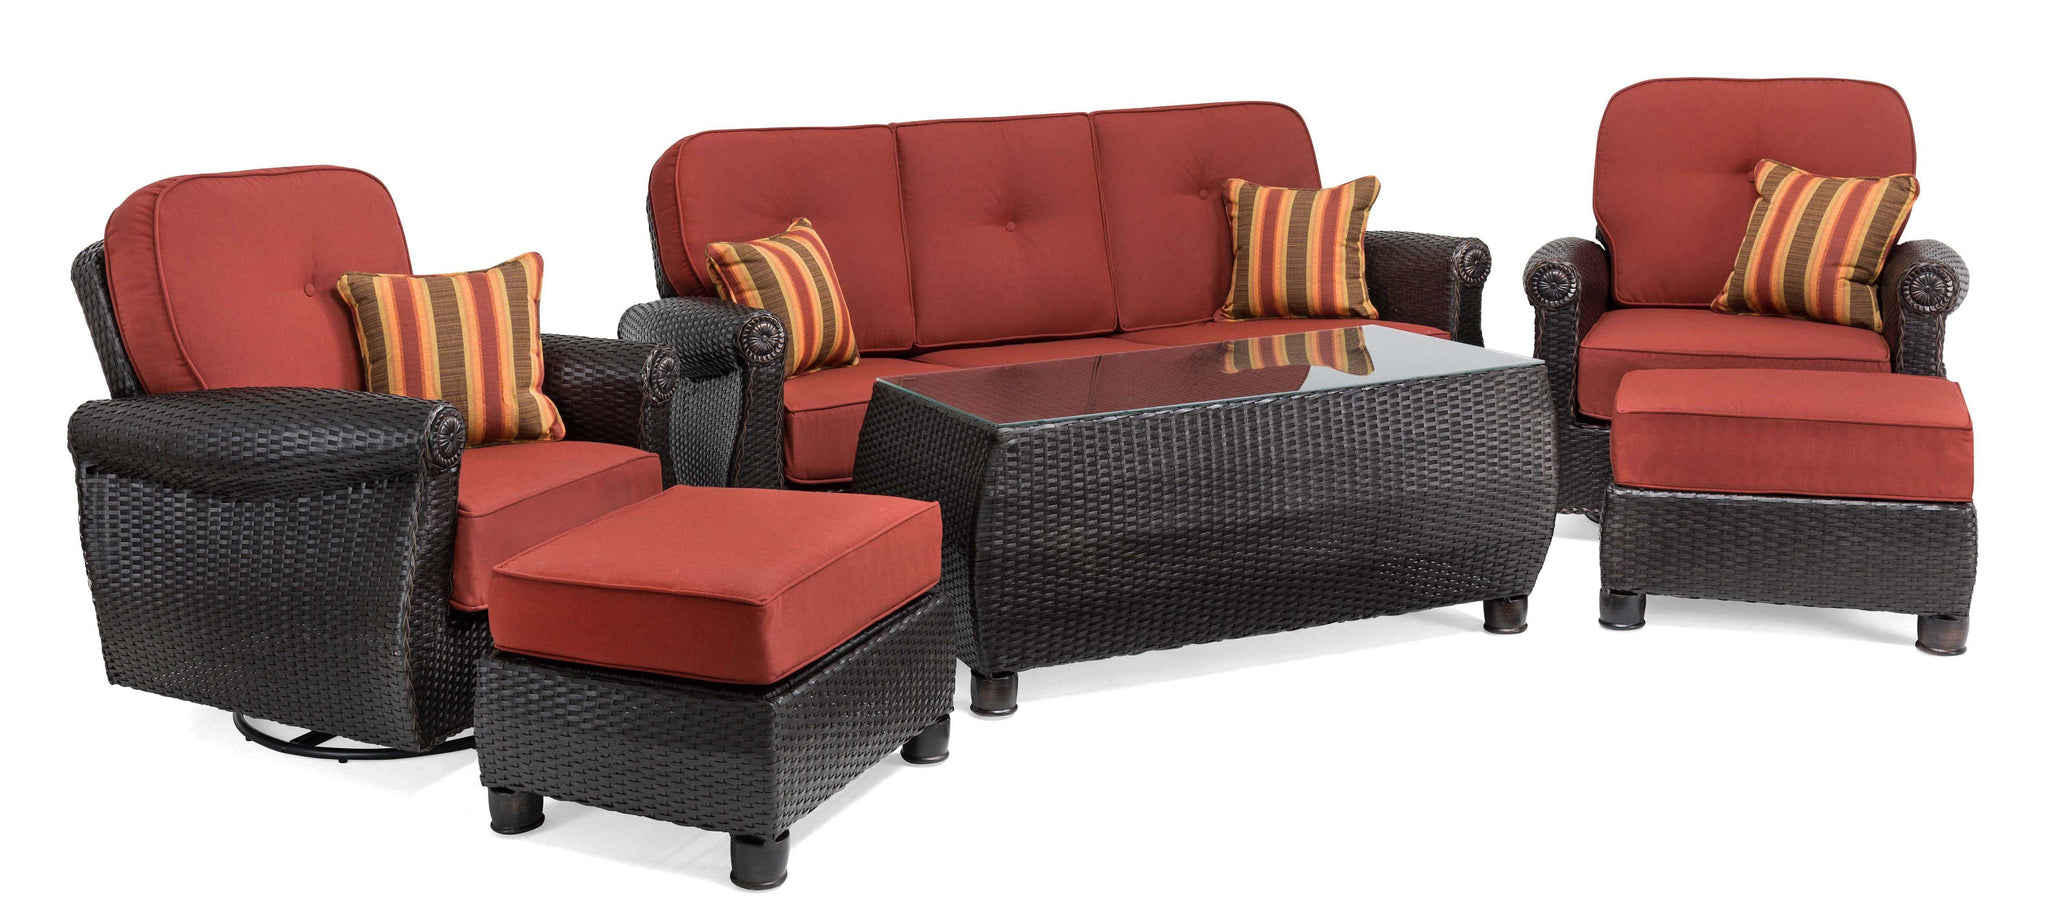 Breckenridge Red 6 Pc Patio Furniture Set: Swivel Rockers